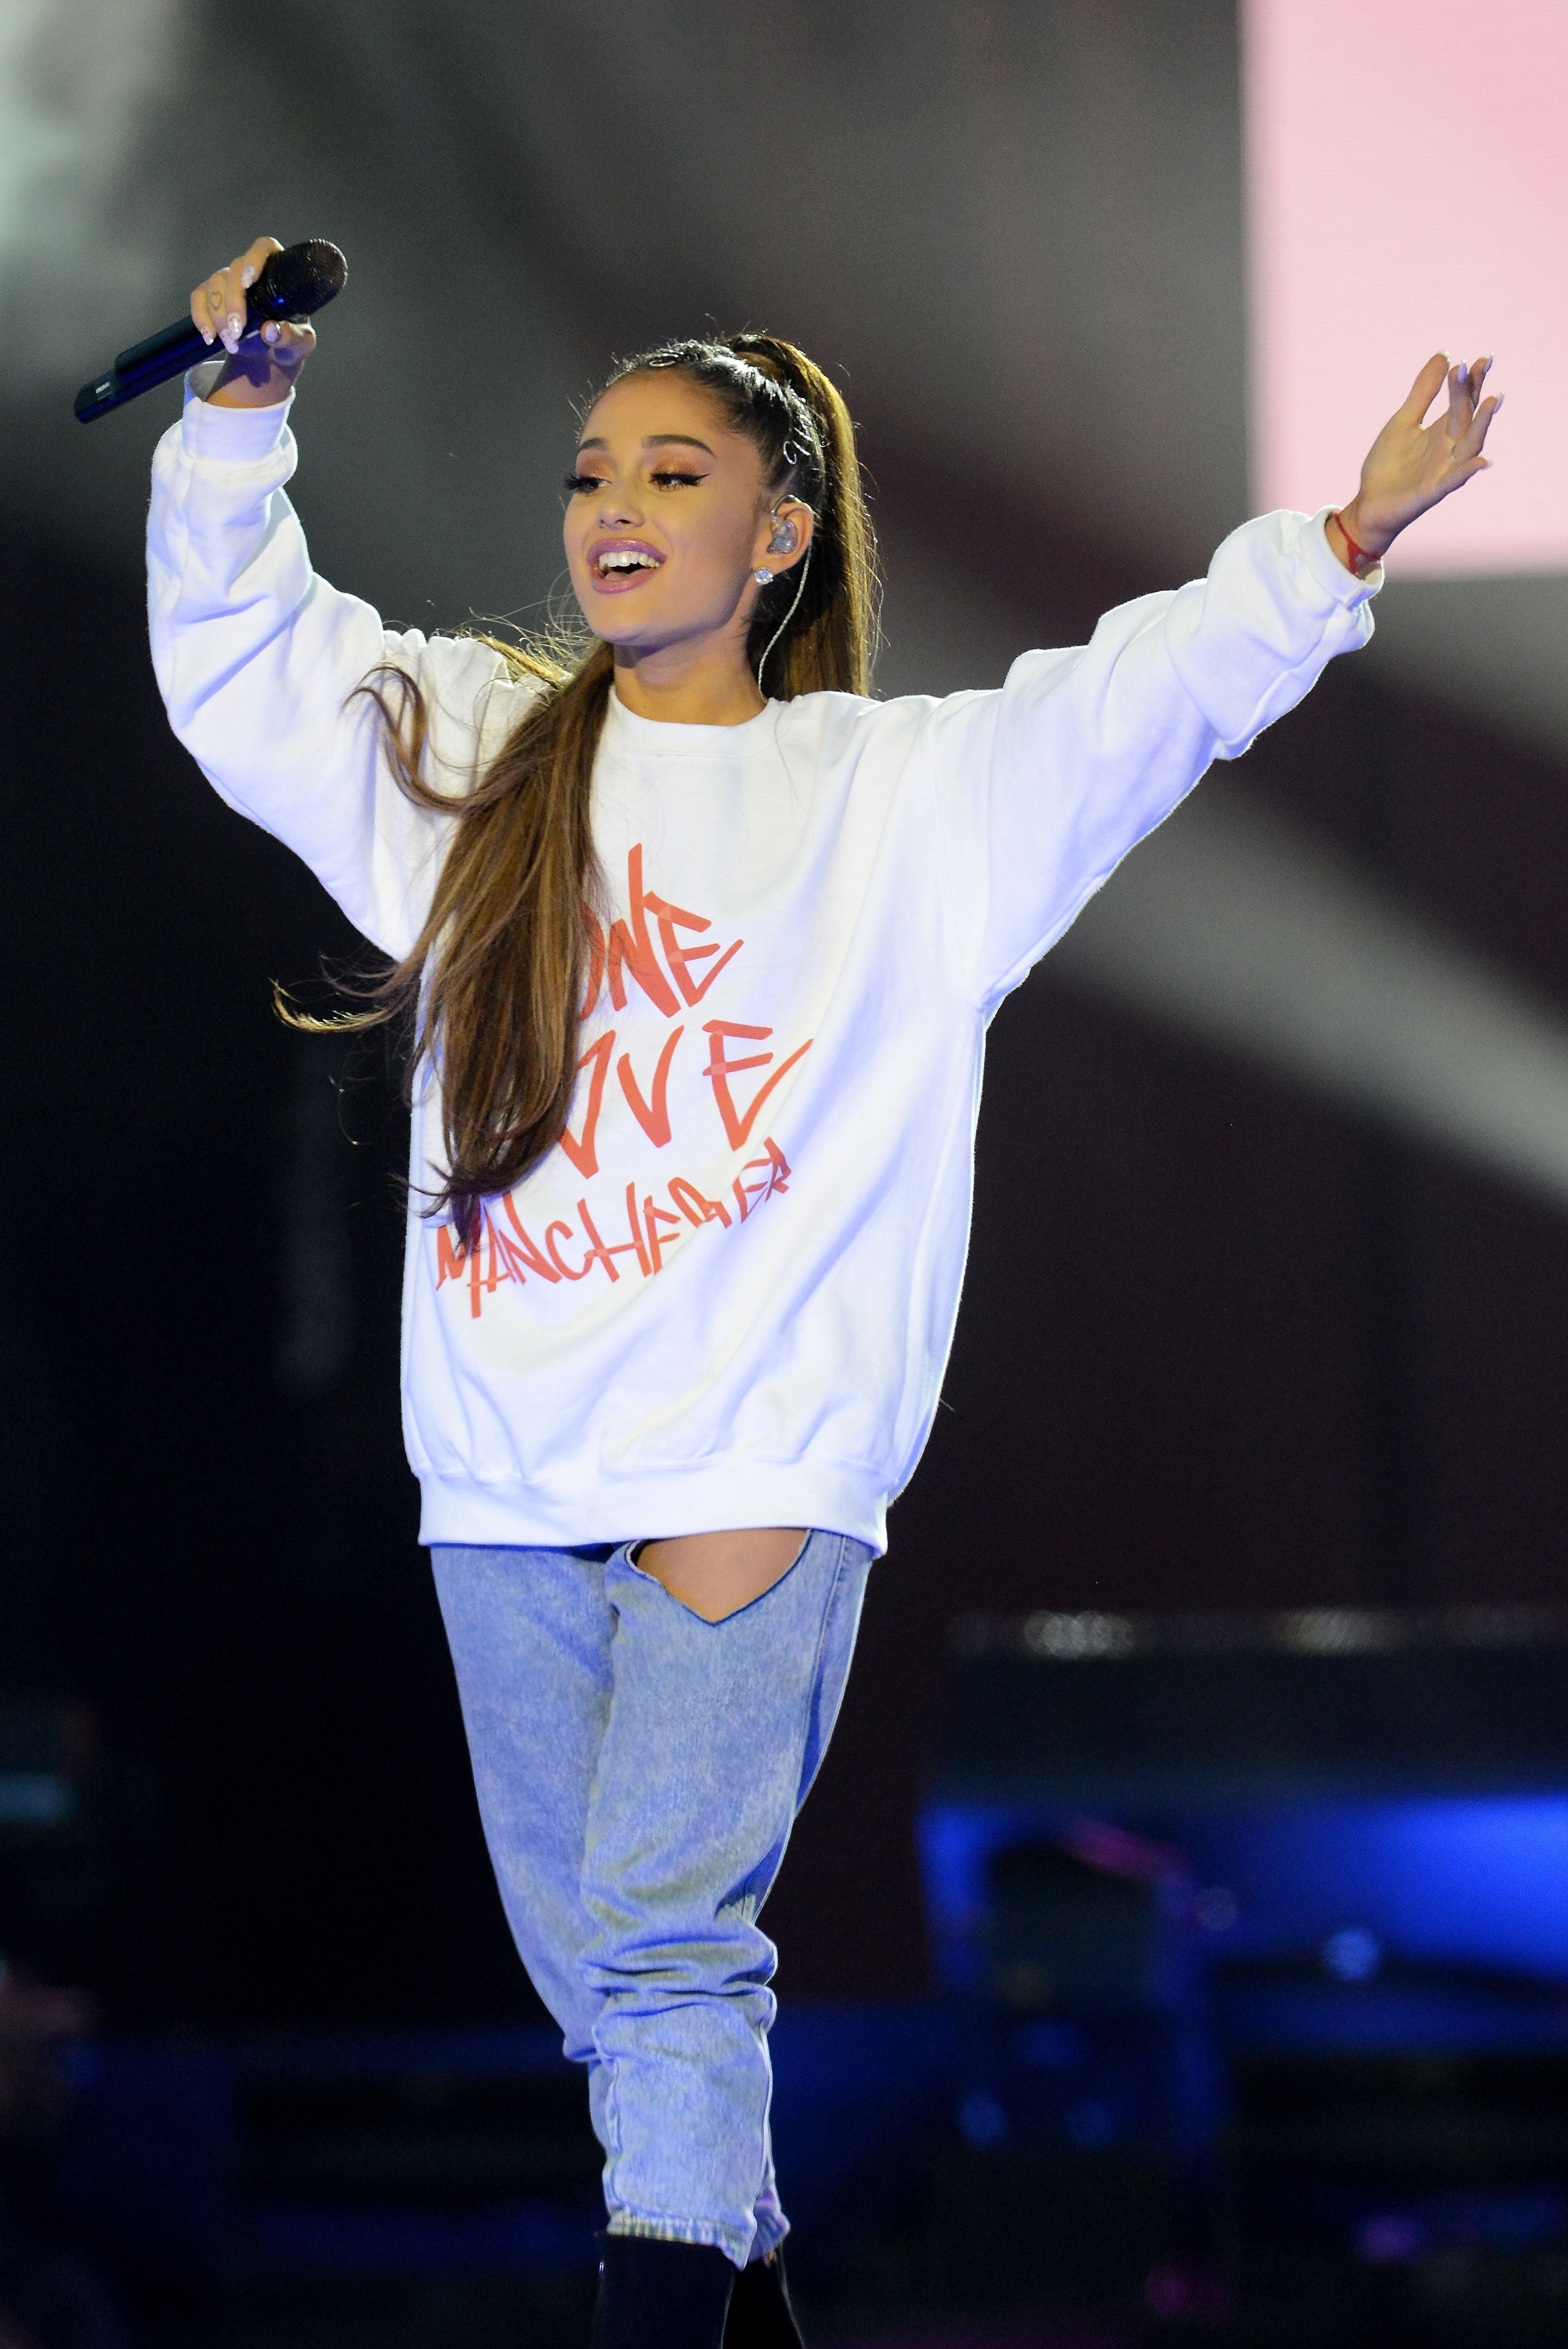 Ariana Grande at the One Love Manchester concert last